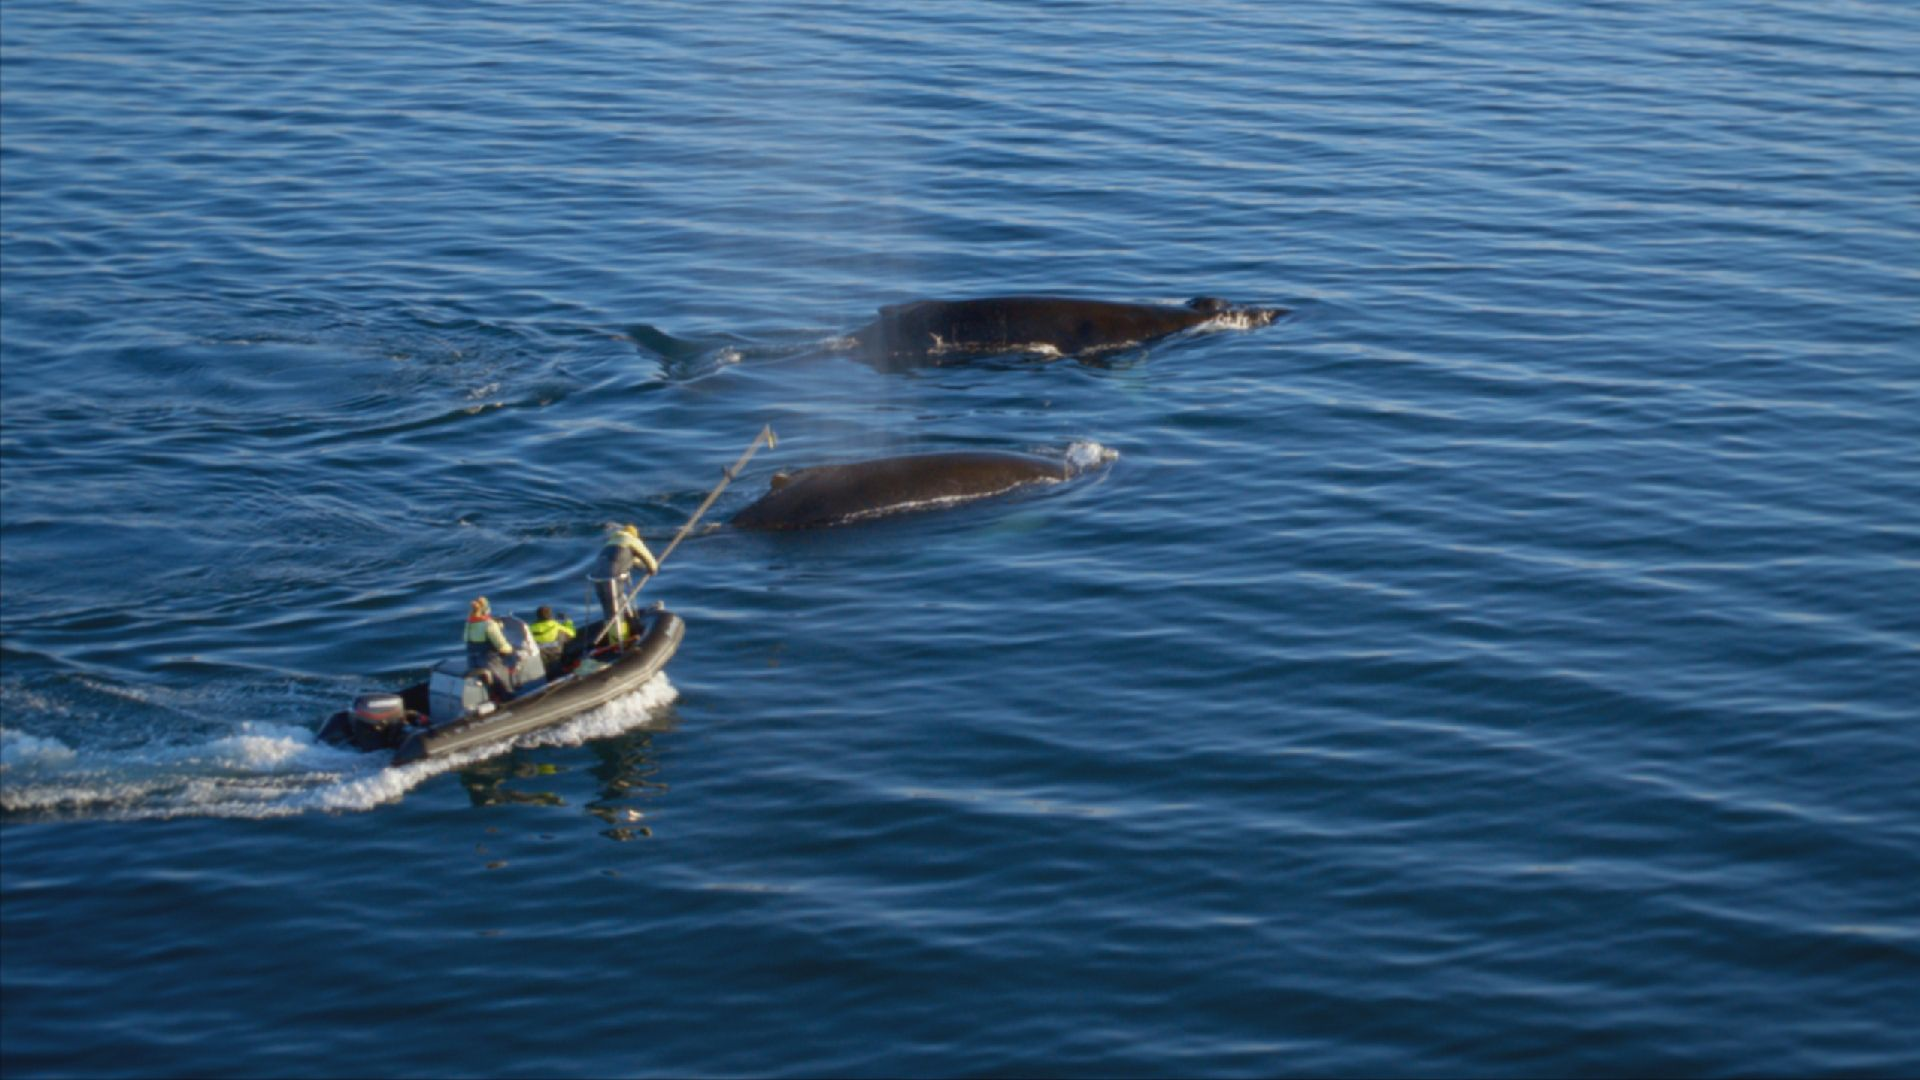 Team of scientists trying to tag a humpback whale. This is from Europe from above, season 4. [Photo of the day - September 2021]